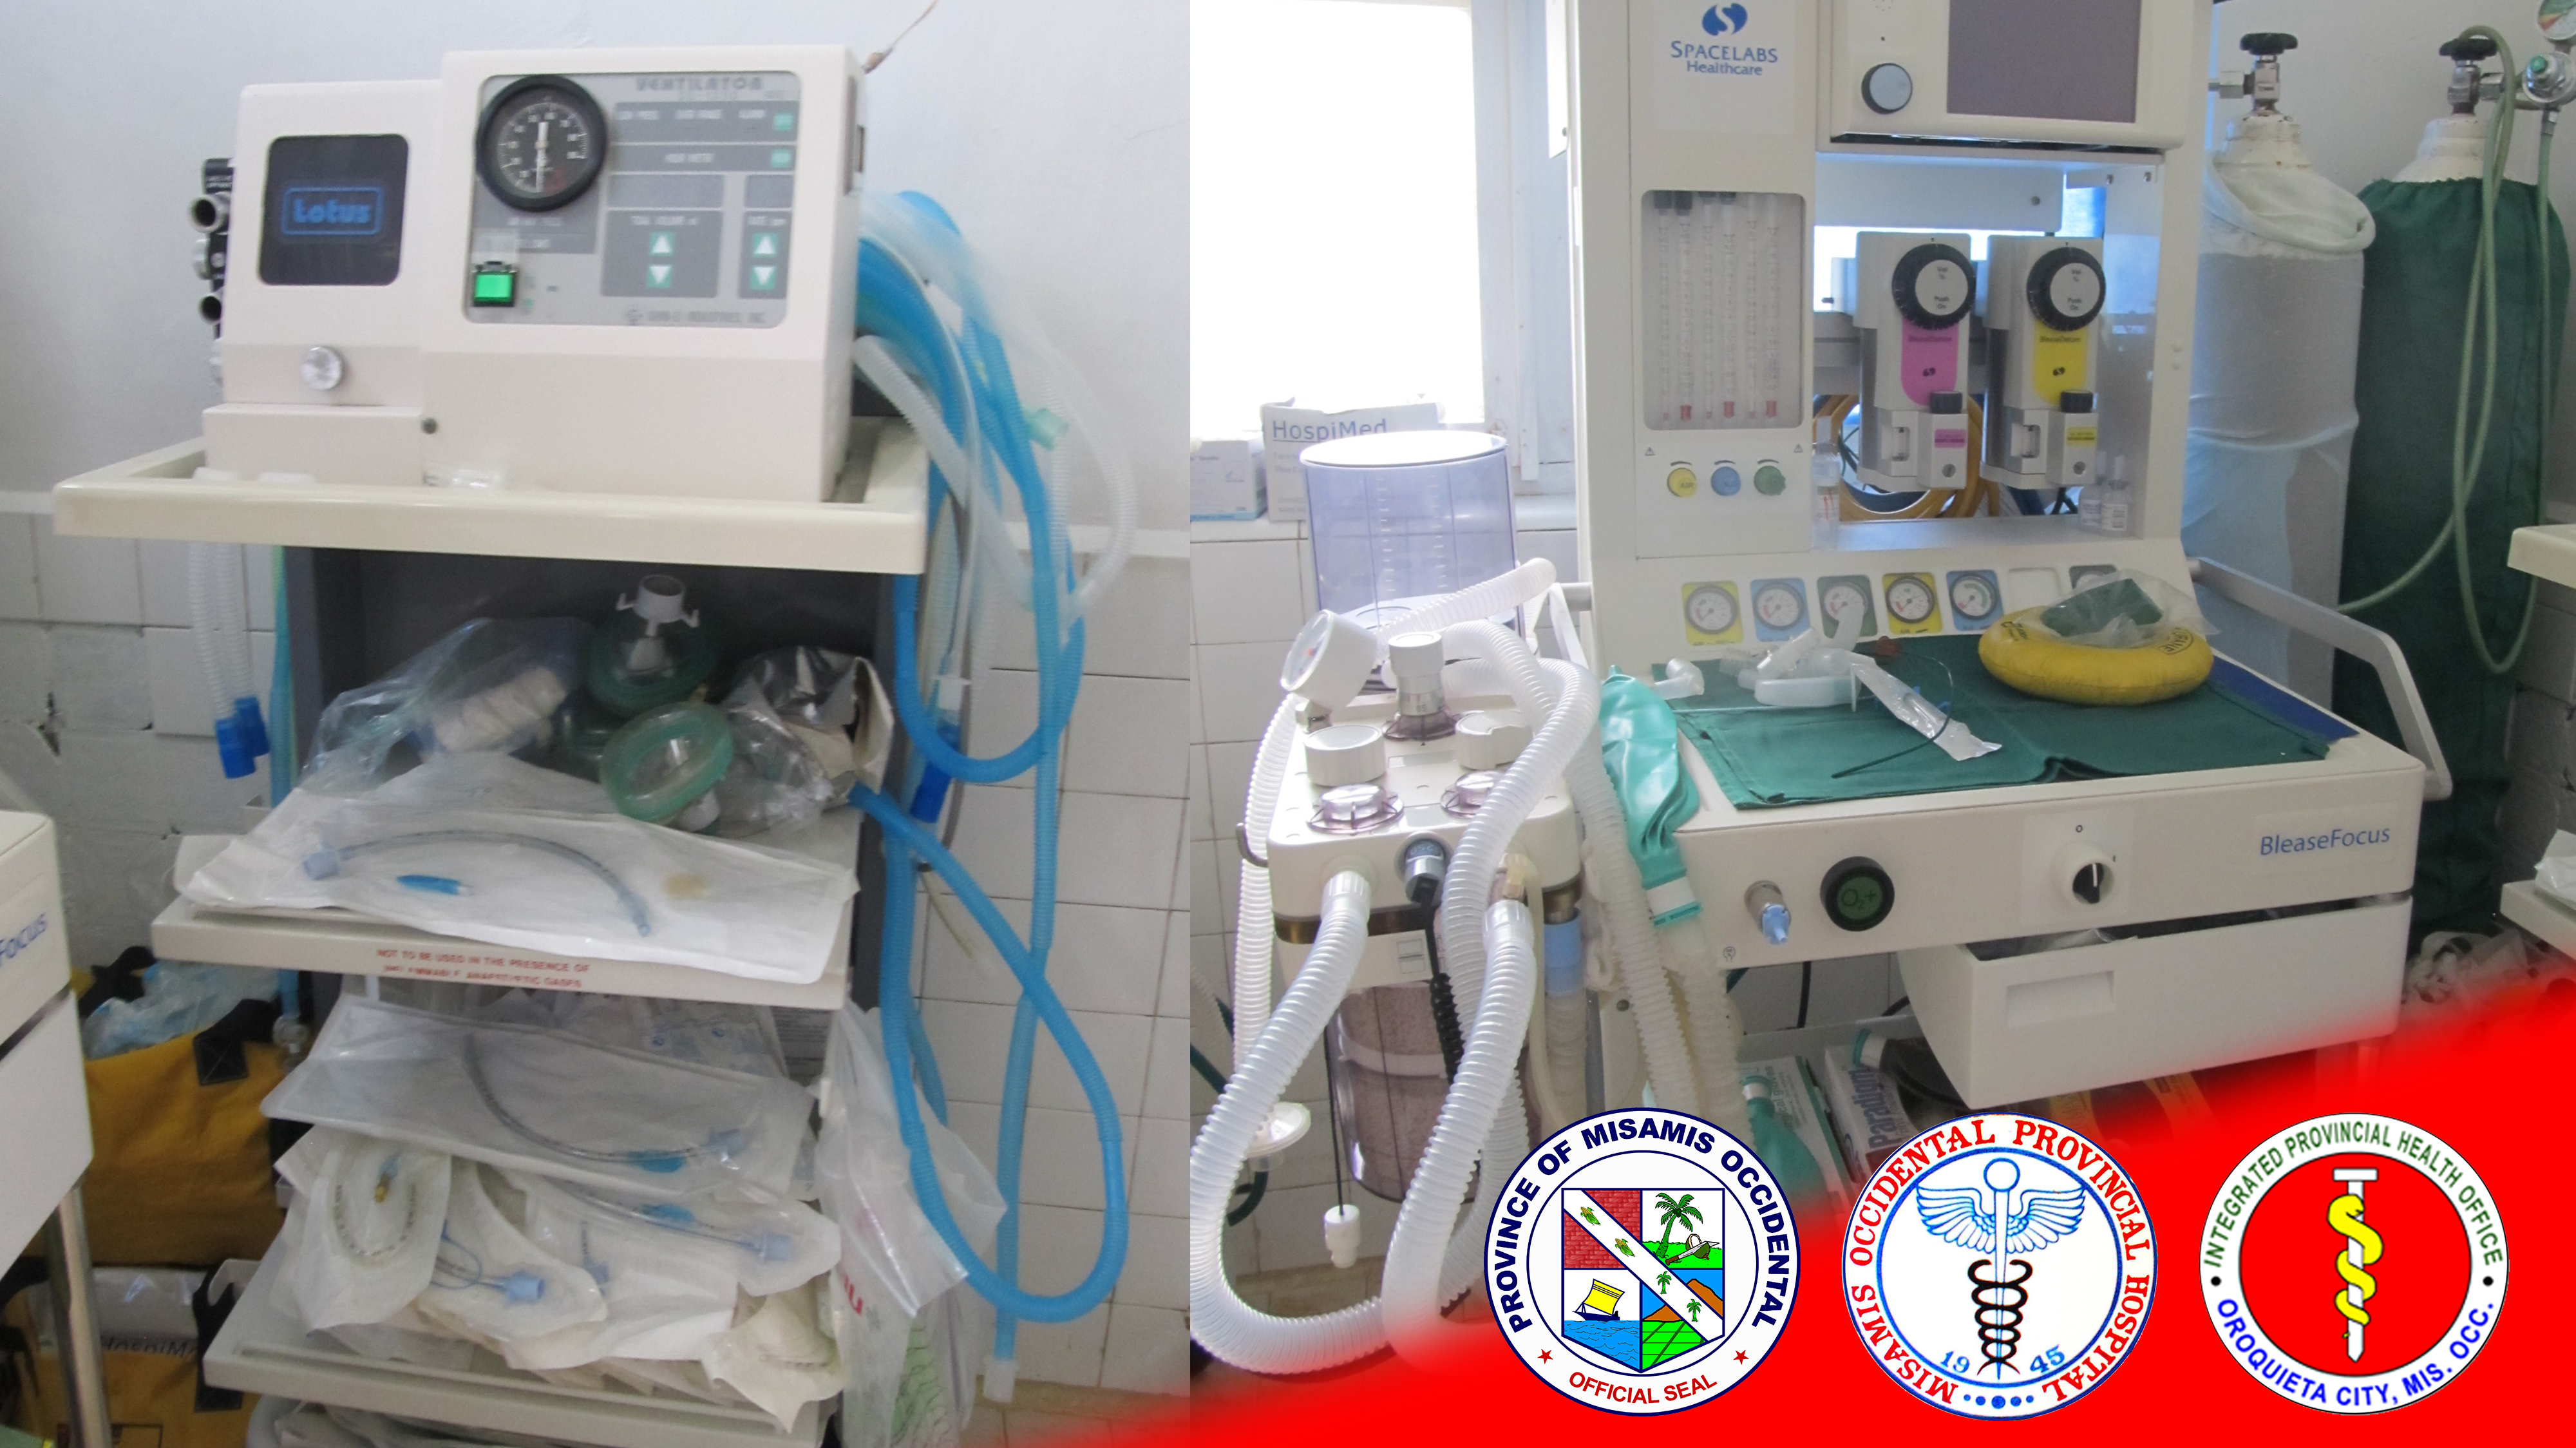 DELIVERY-ROOM1-1